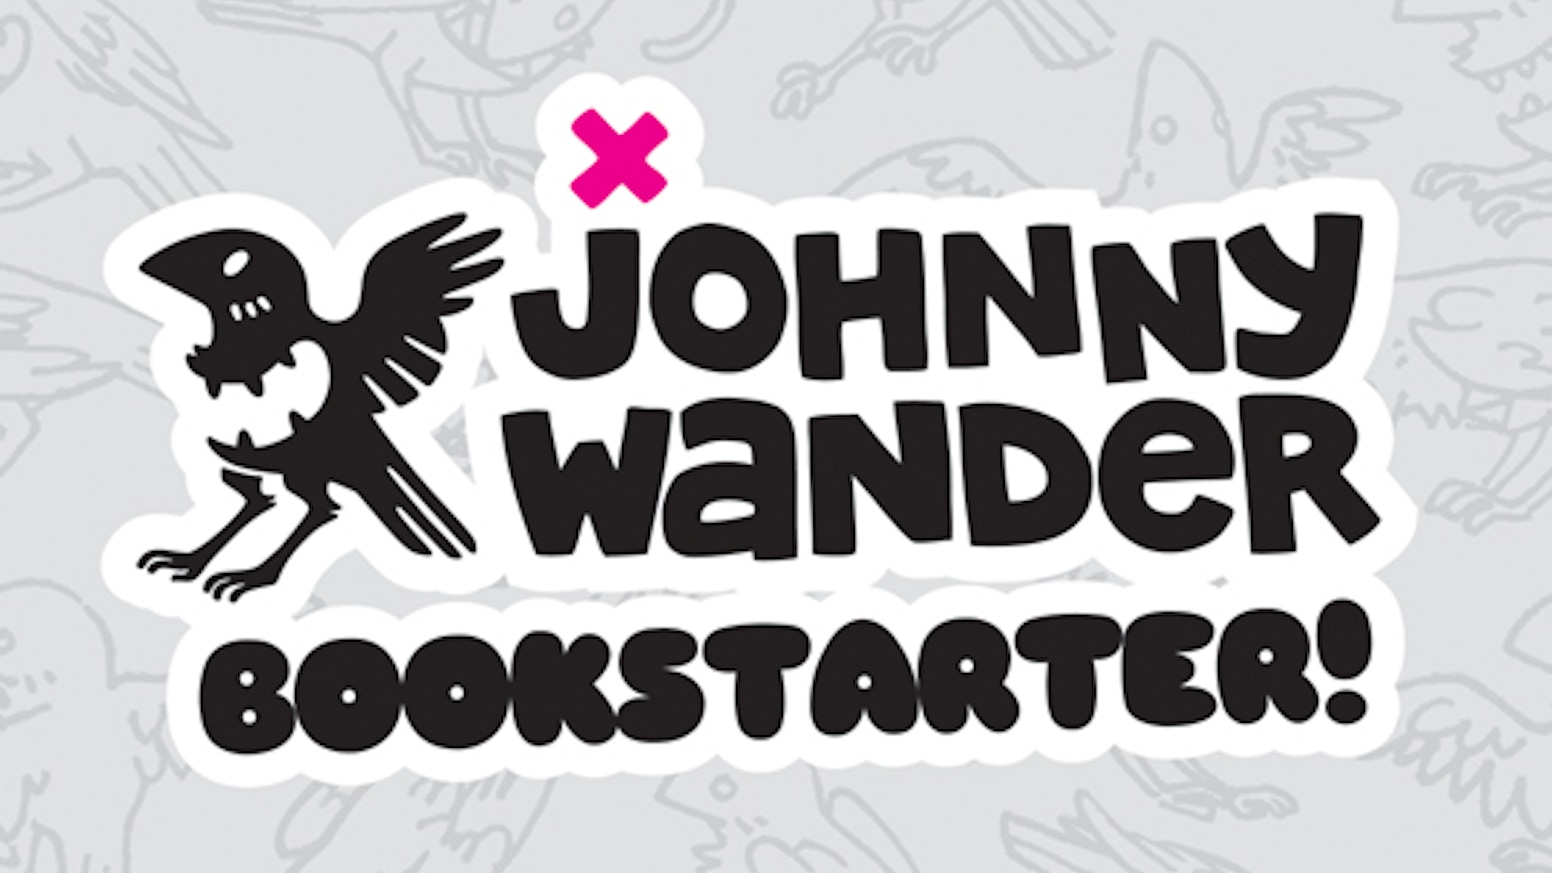 Help publish Johnny Wander Vol. 3: Ballad of Laundry Cat and reprint Vol. 1: Don't Burn the House Down. You can also get Vol. 2!